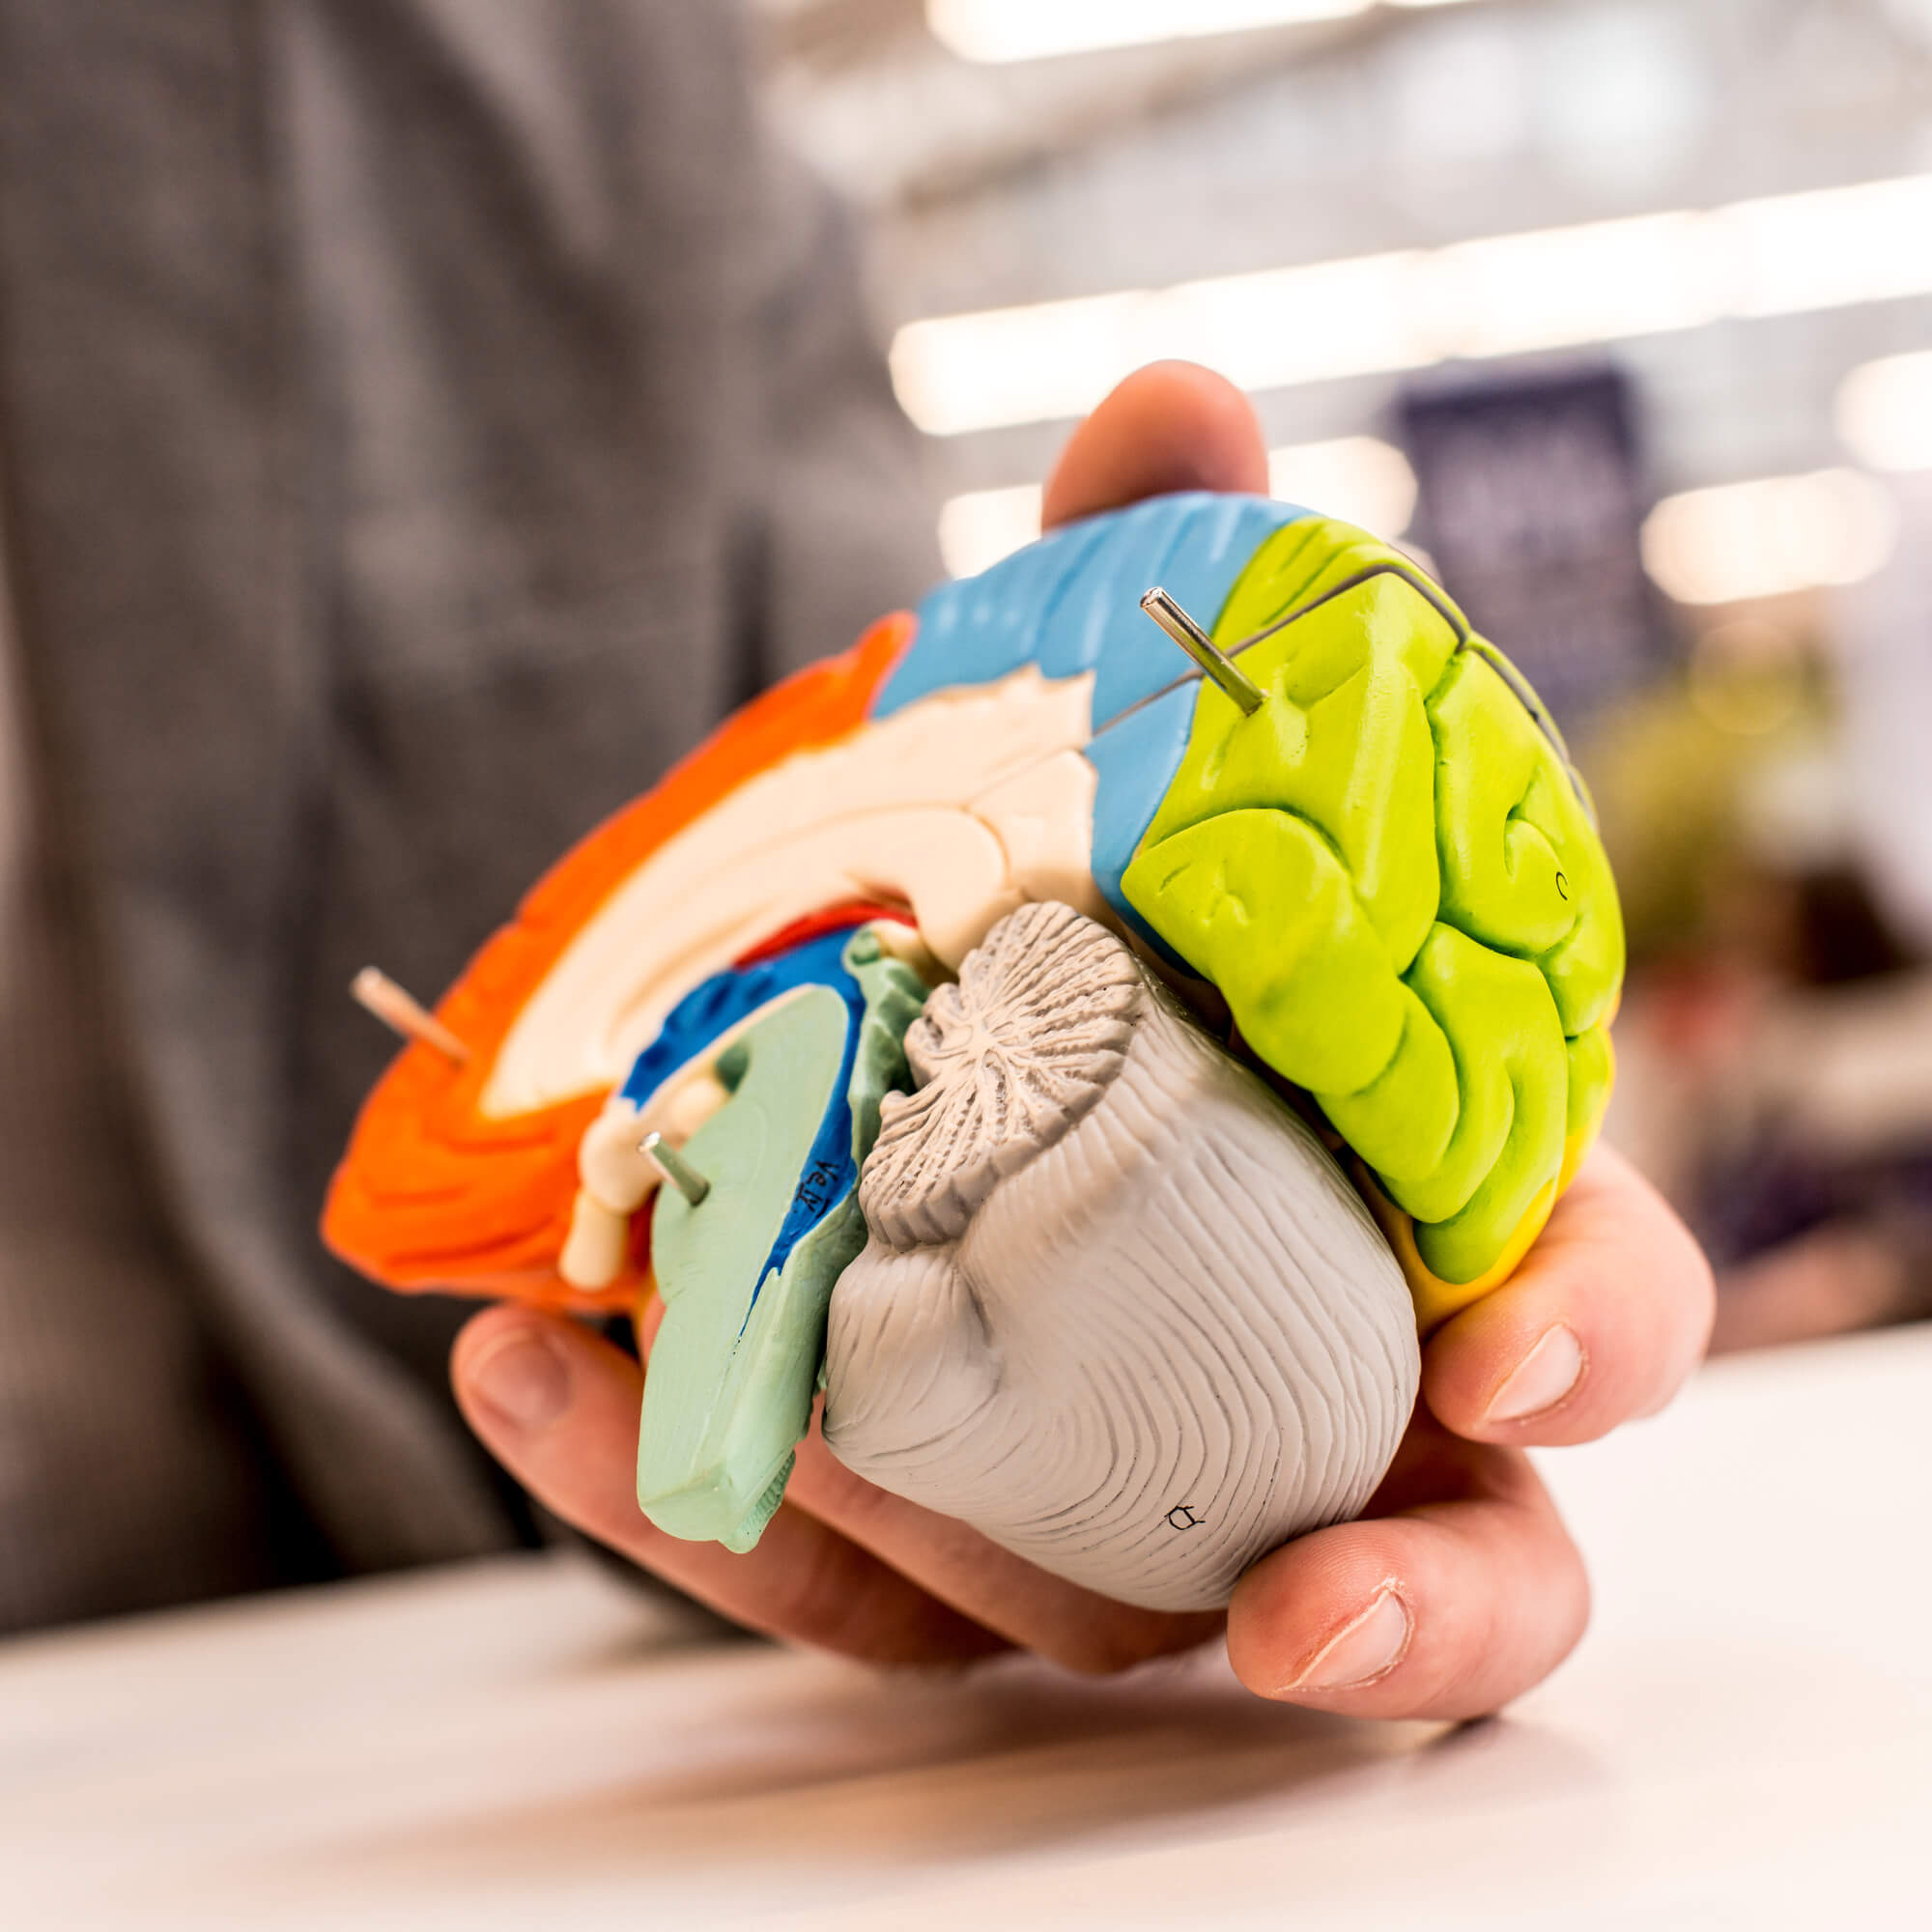 A hand holding a plastic mode of a brain